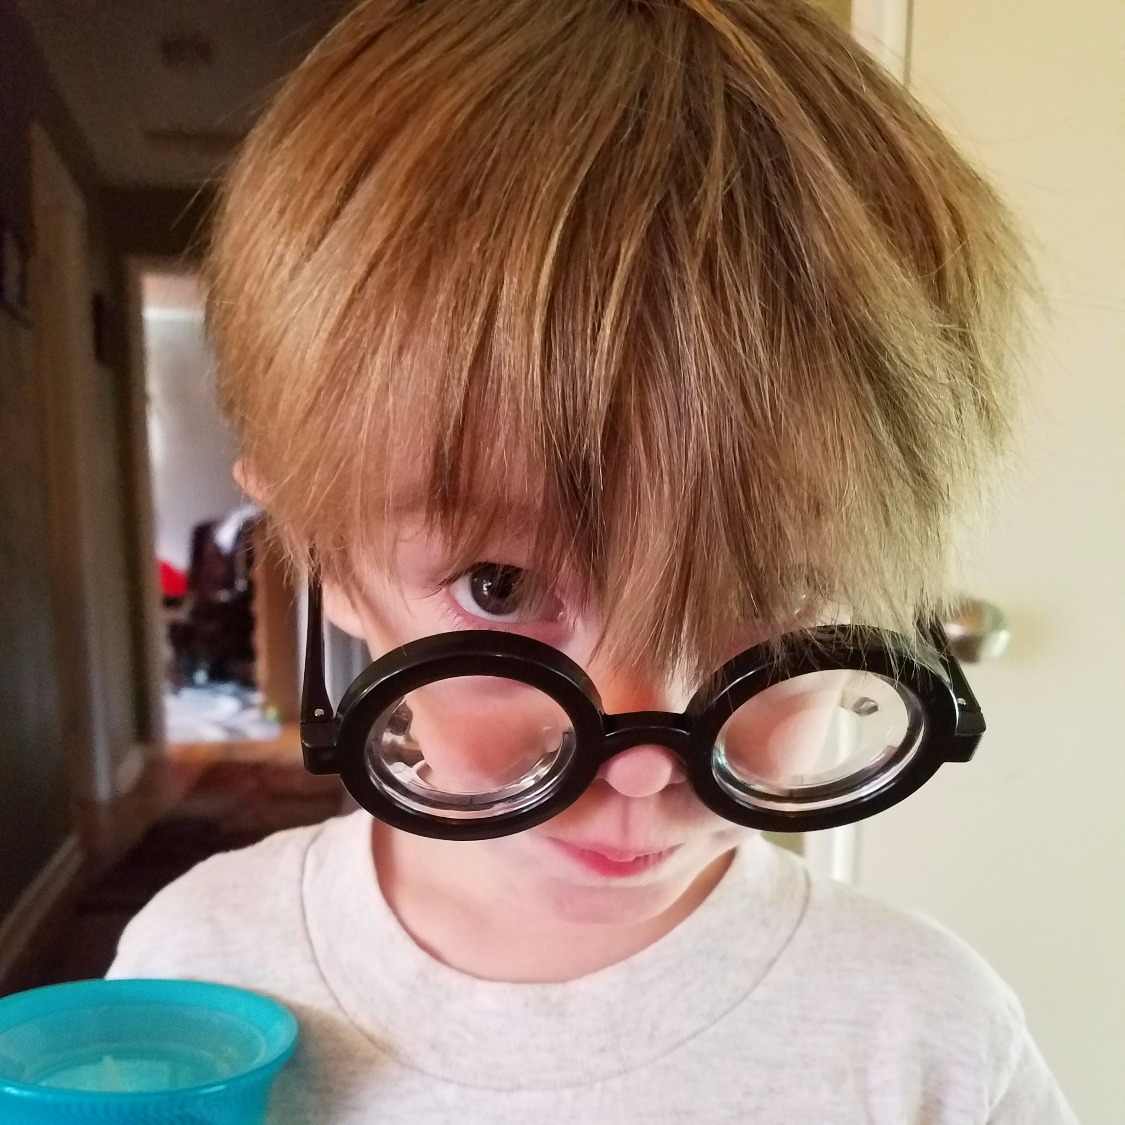 Ryder wearing oversized glasses